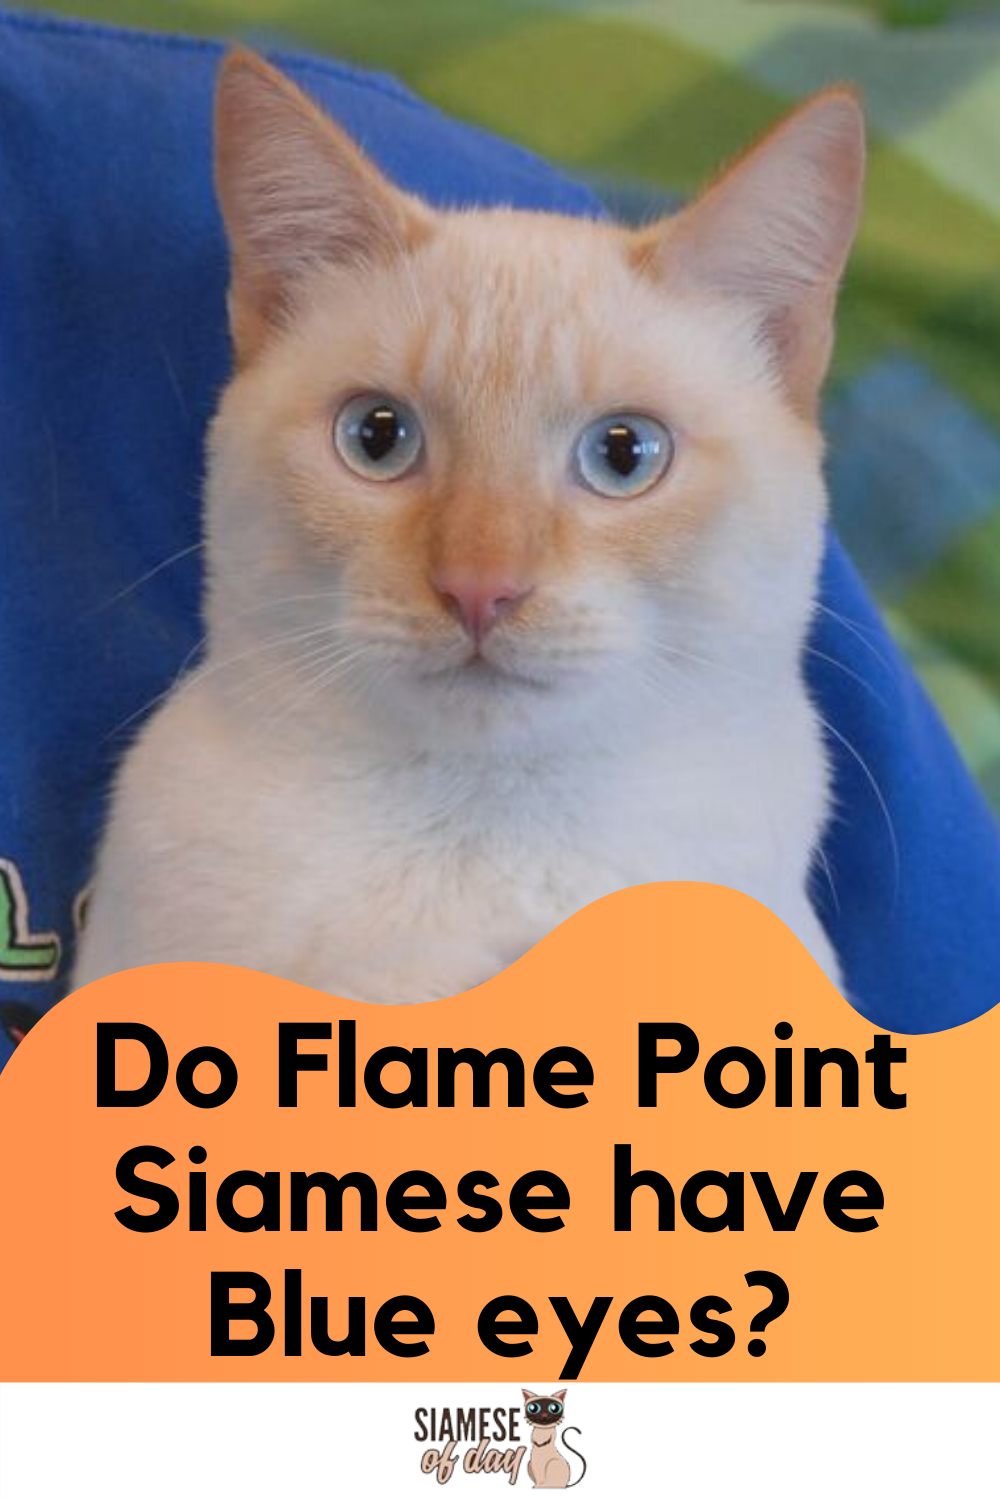 Red Flame Point Siamese Cats Siamese Of Day In 2020 Siamese Siamese Cats Blue Eyes